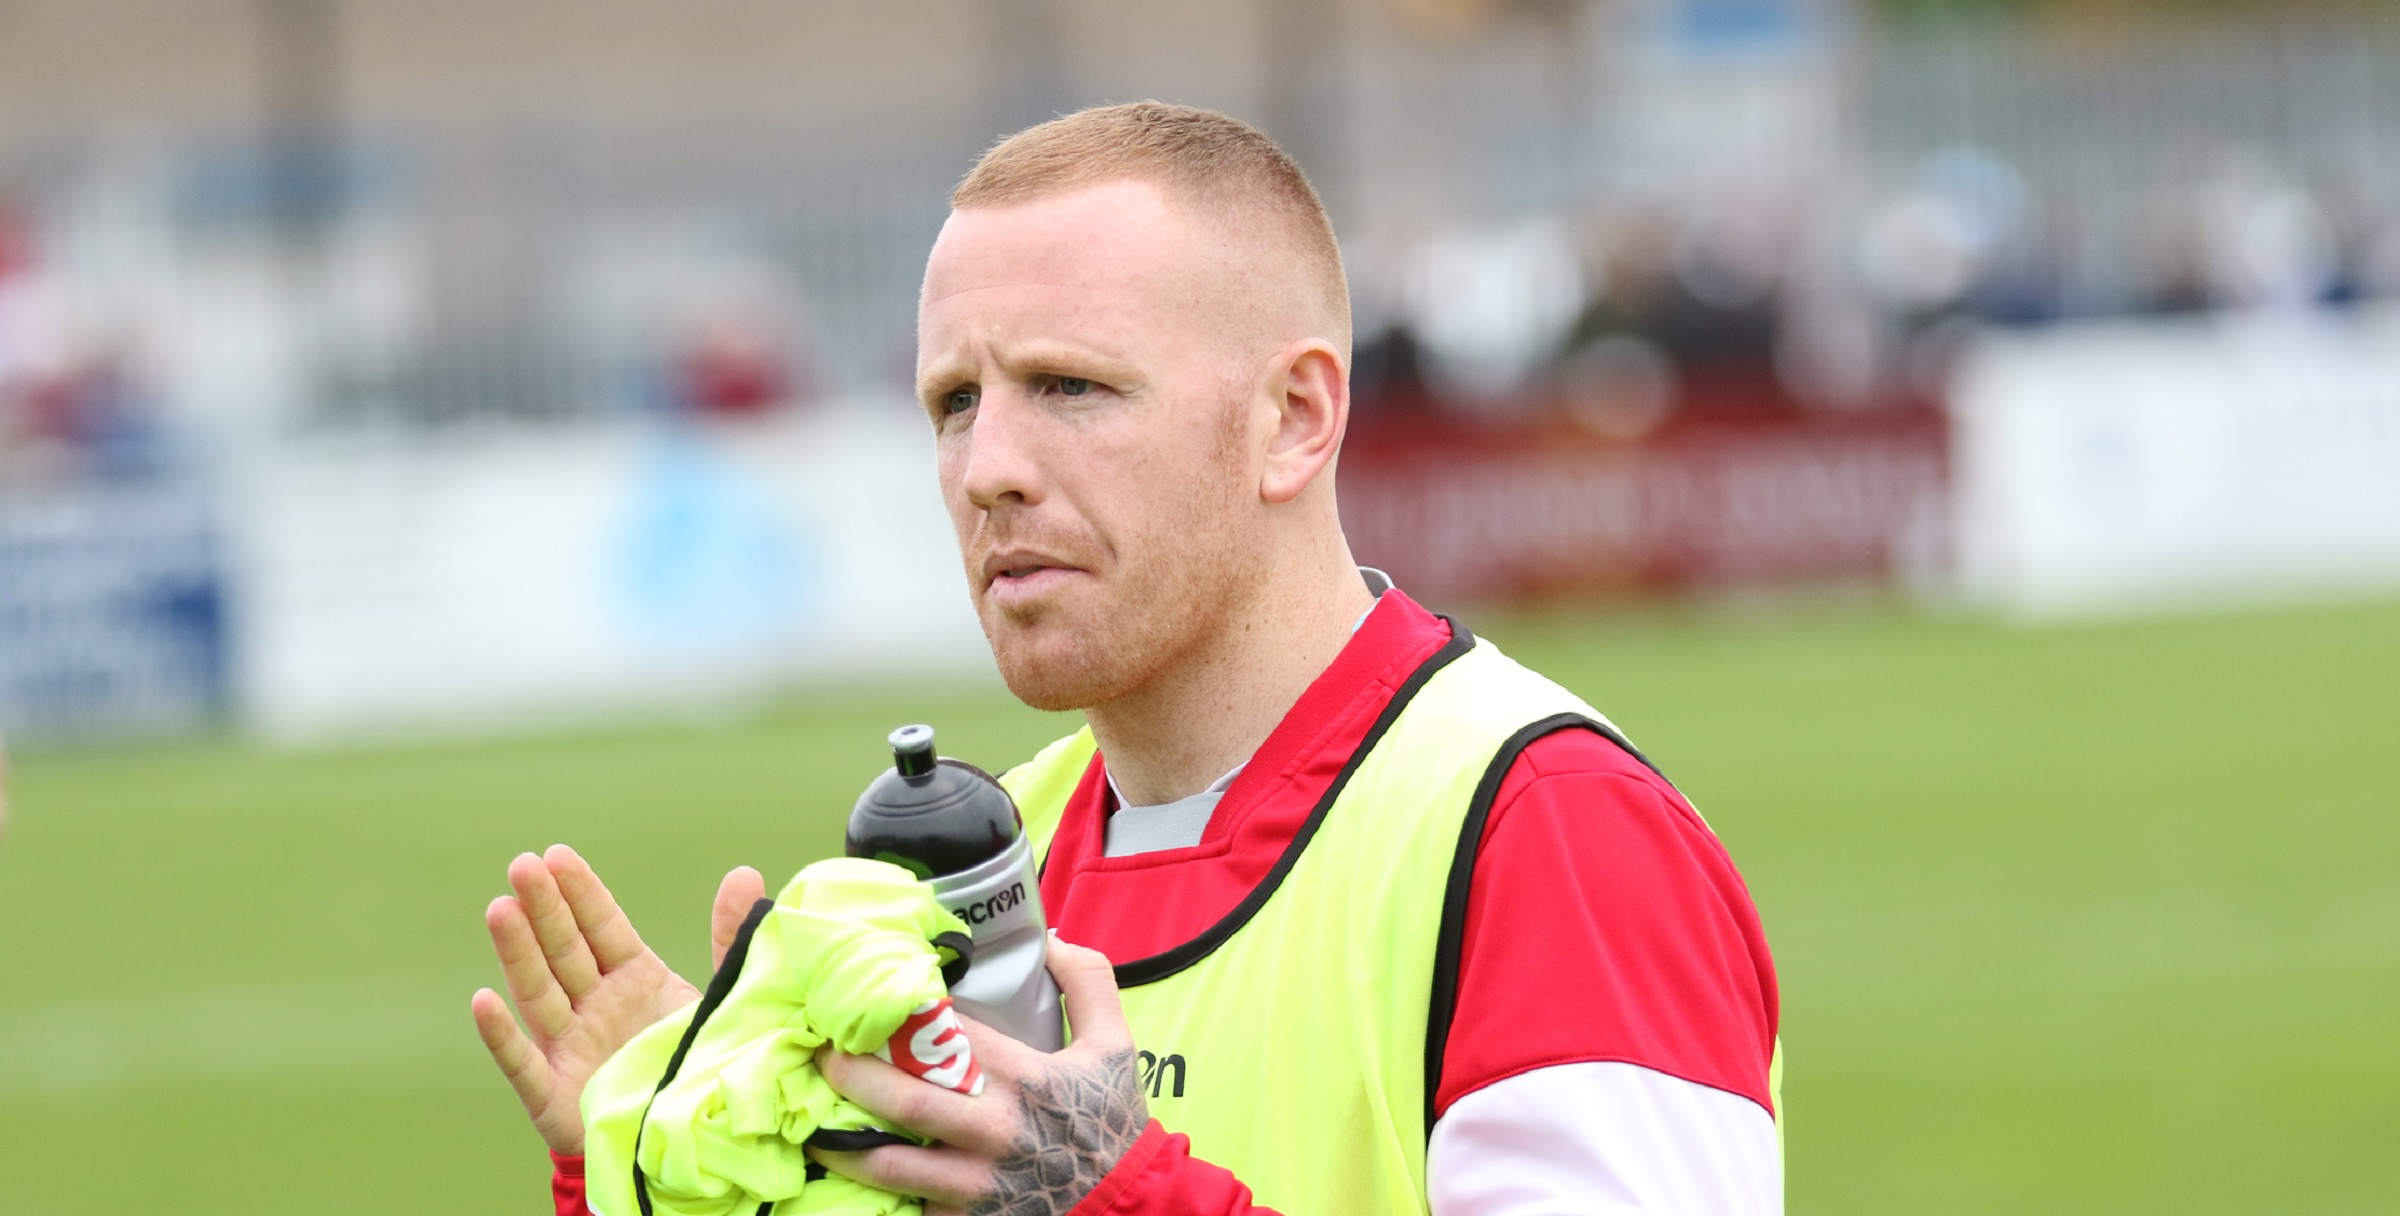 Matty Pattison joins Whickham from South Shields